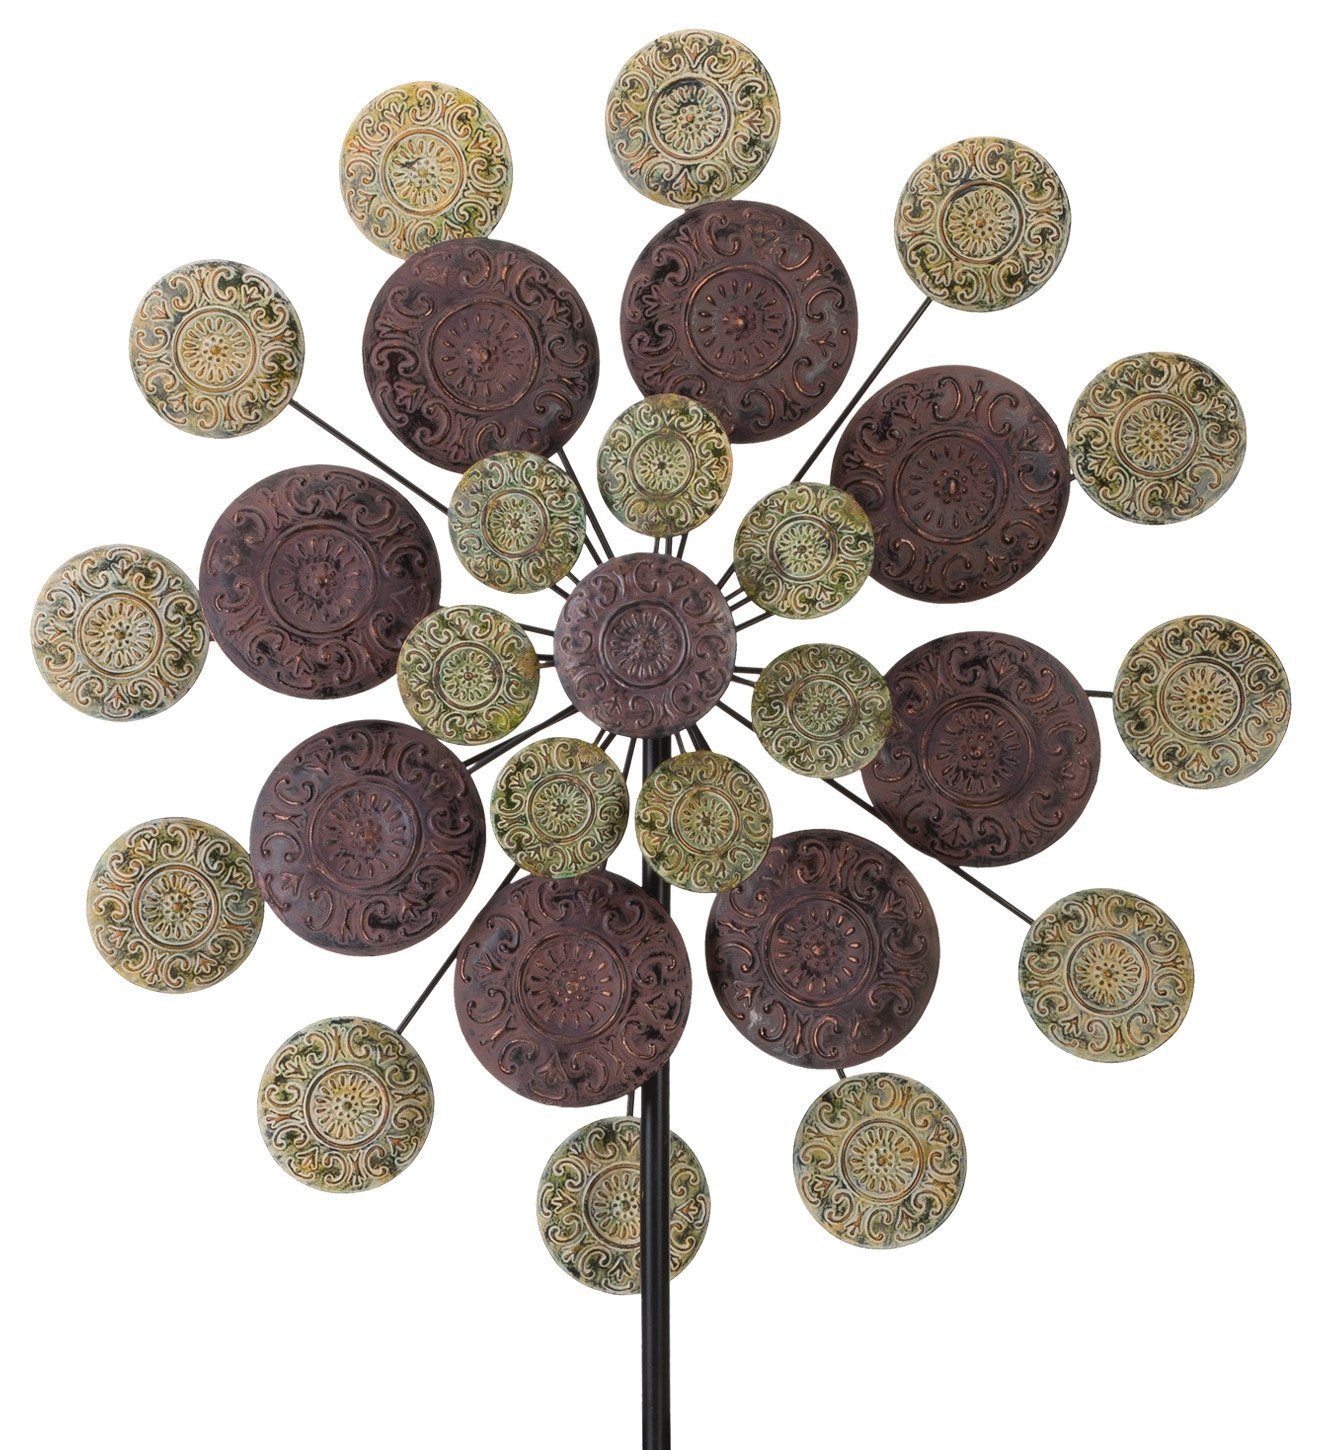 Regal Art & Gift Kinetic 32 inches x 9.5 inches x 85 inches Stake - Sage Medallion Garden Stakes by Regal Art & Gift (Image #1)